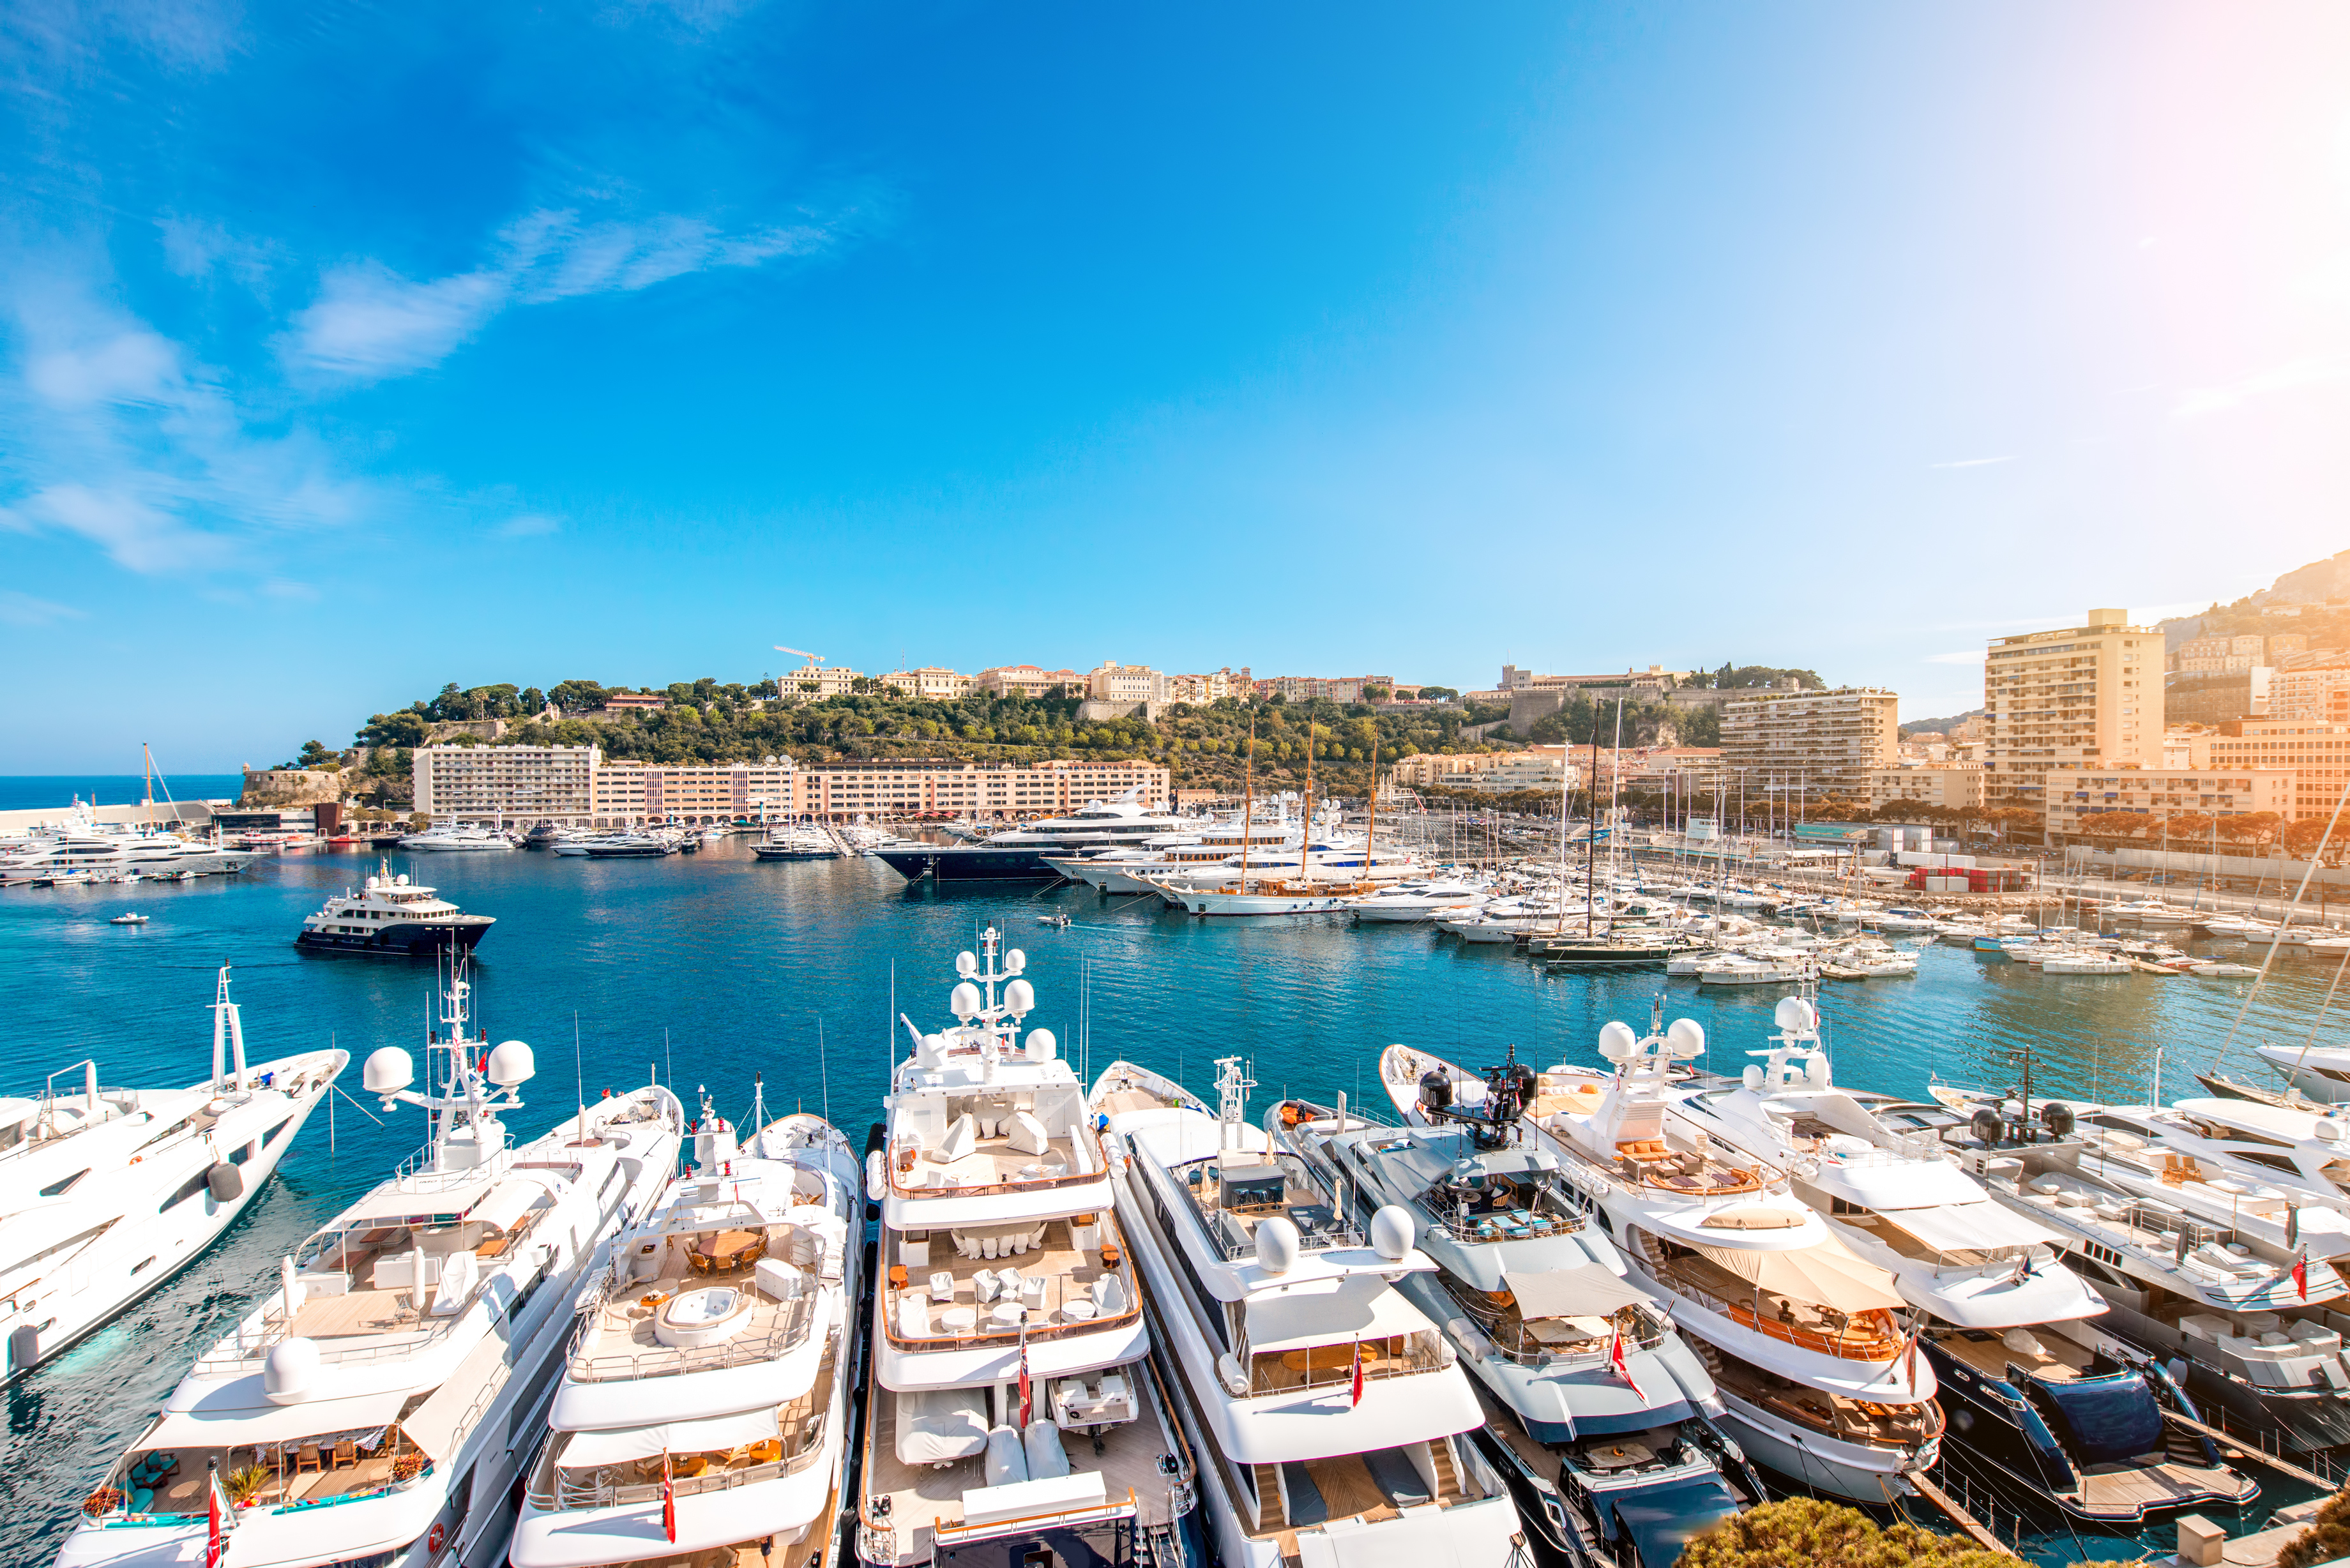 Streets of monaco superyacht